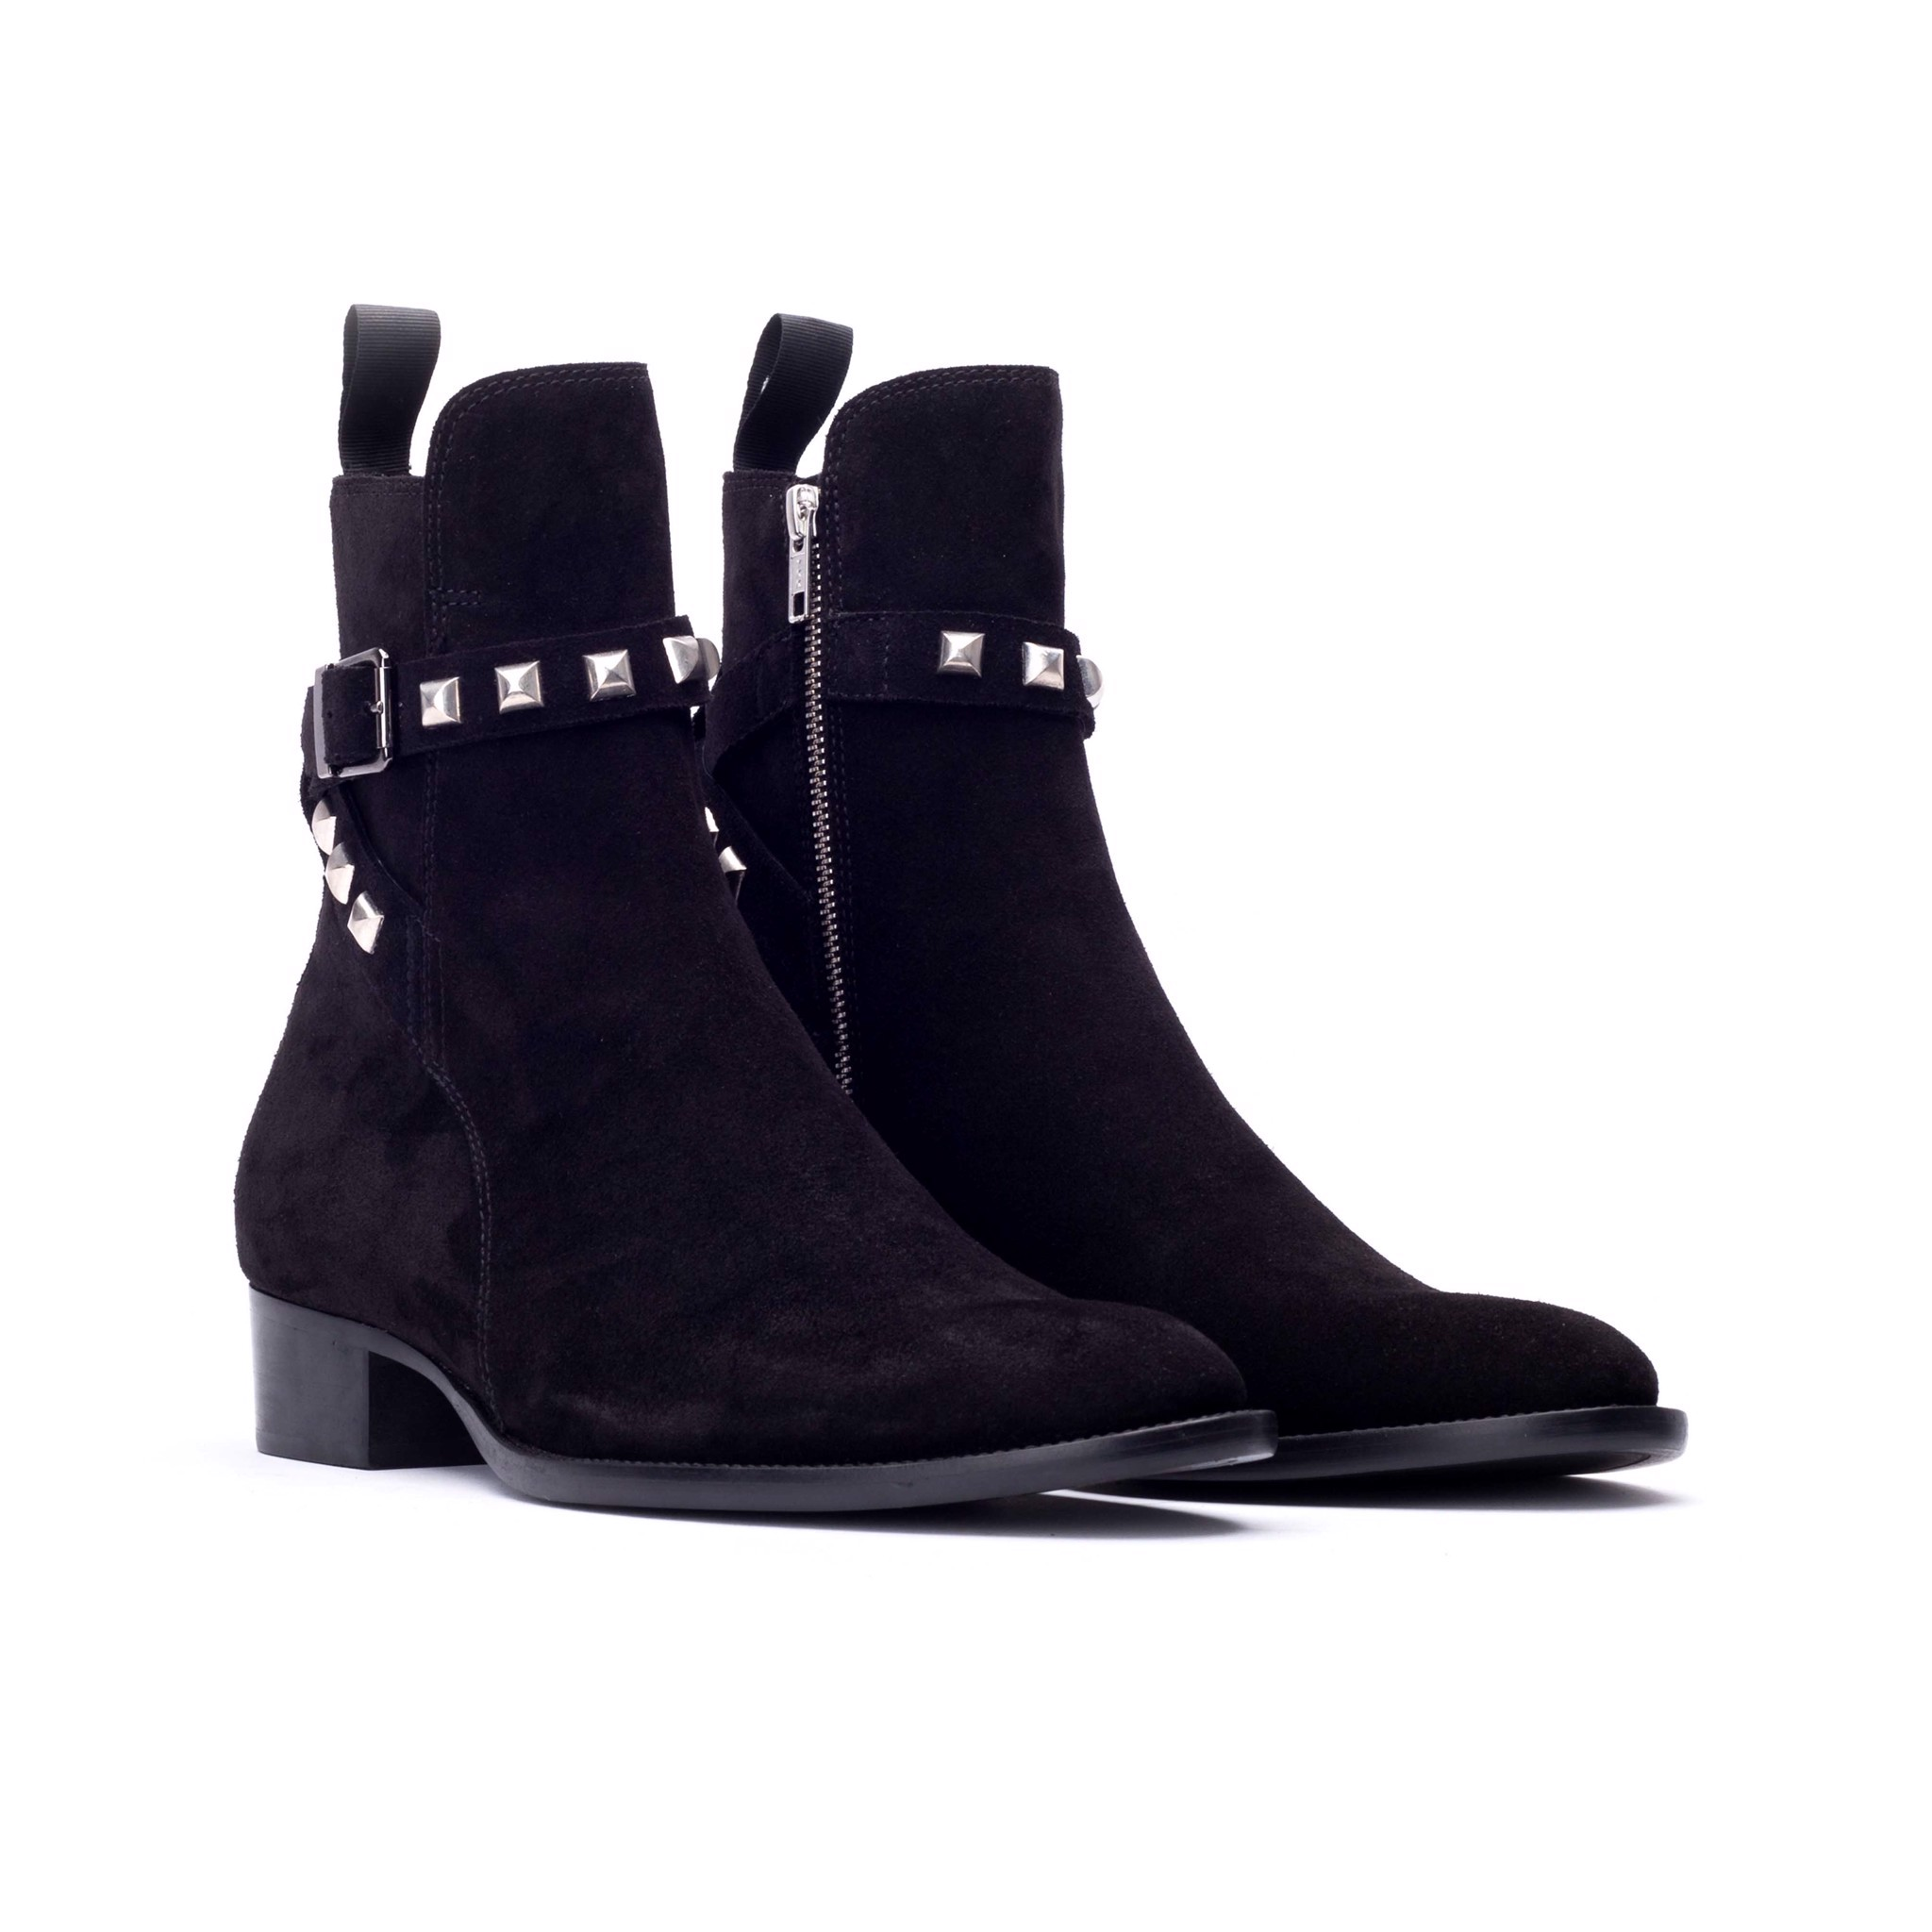 THE BRAVE WOLF ANKLE BOOT – BLACK SUEDE